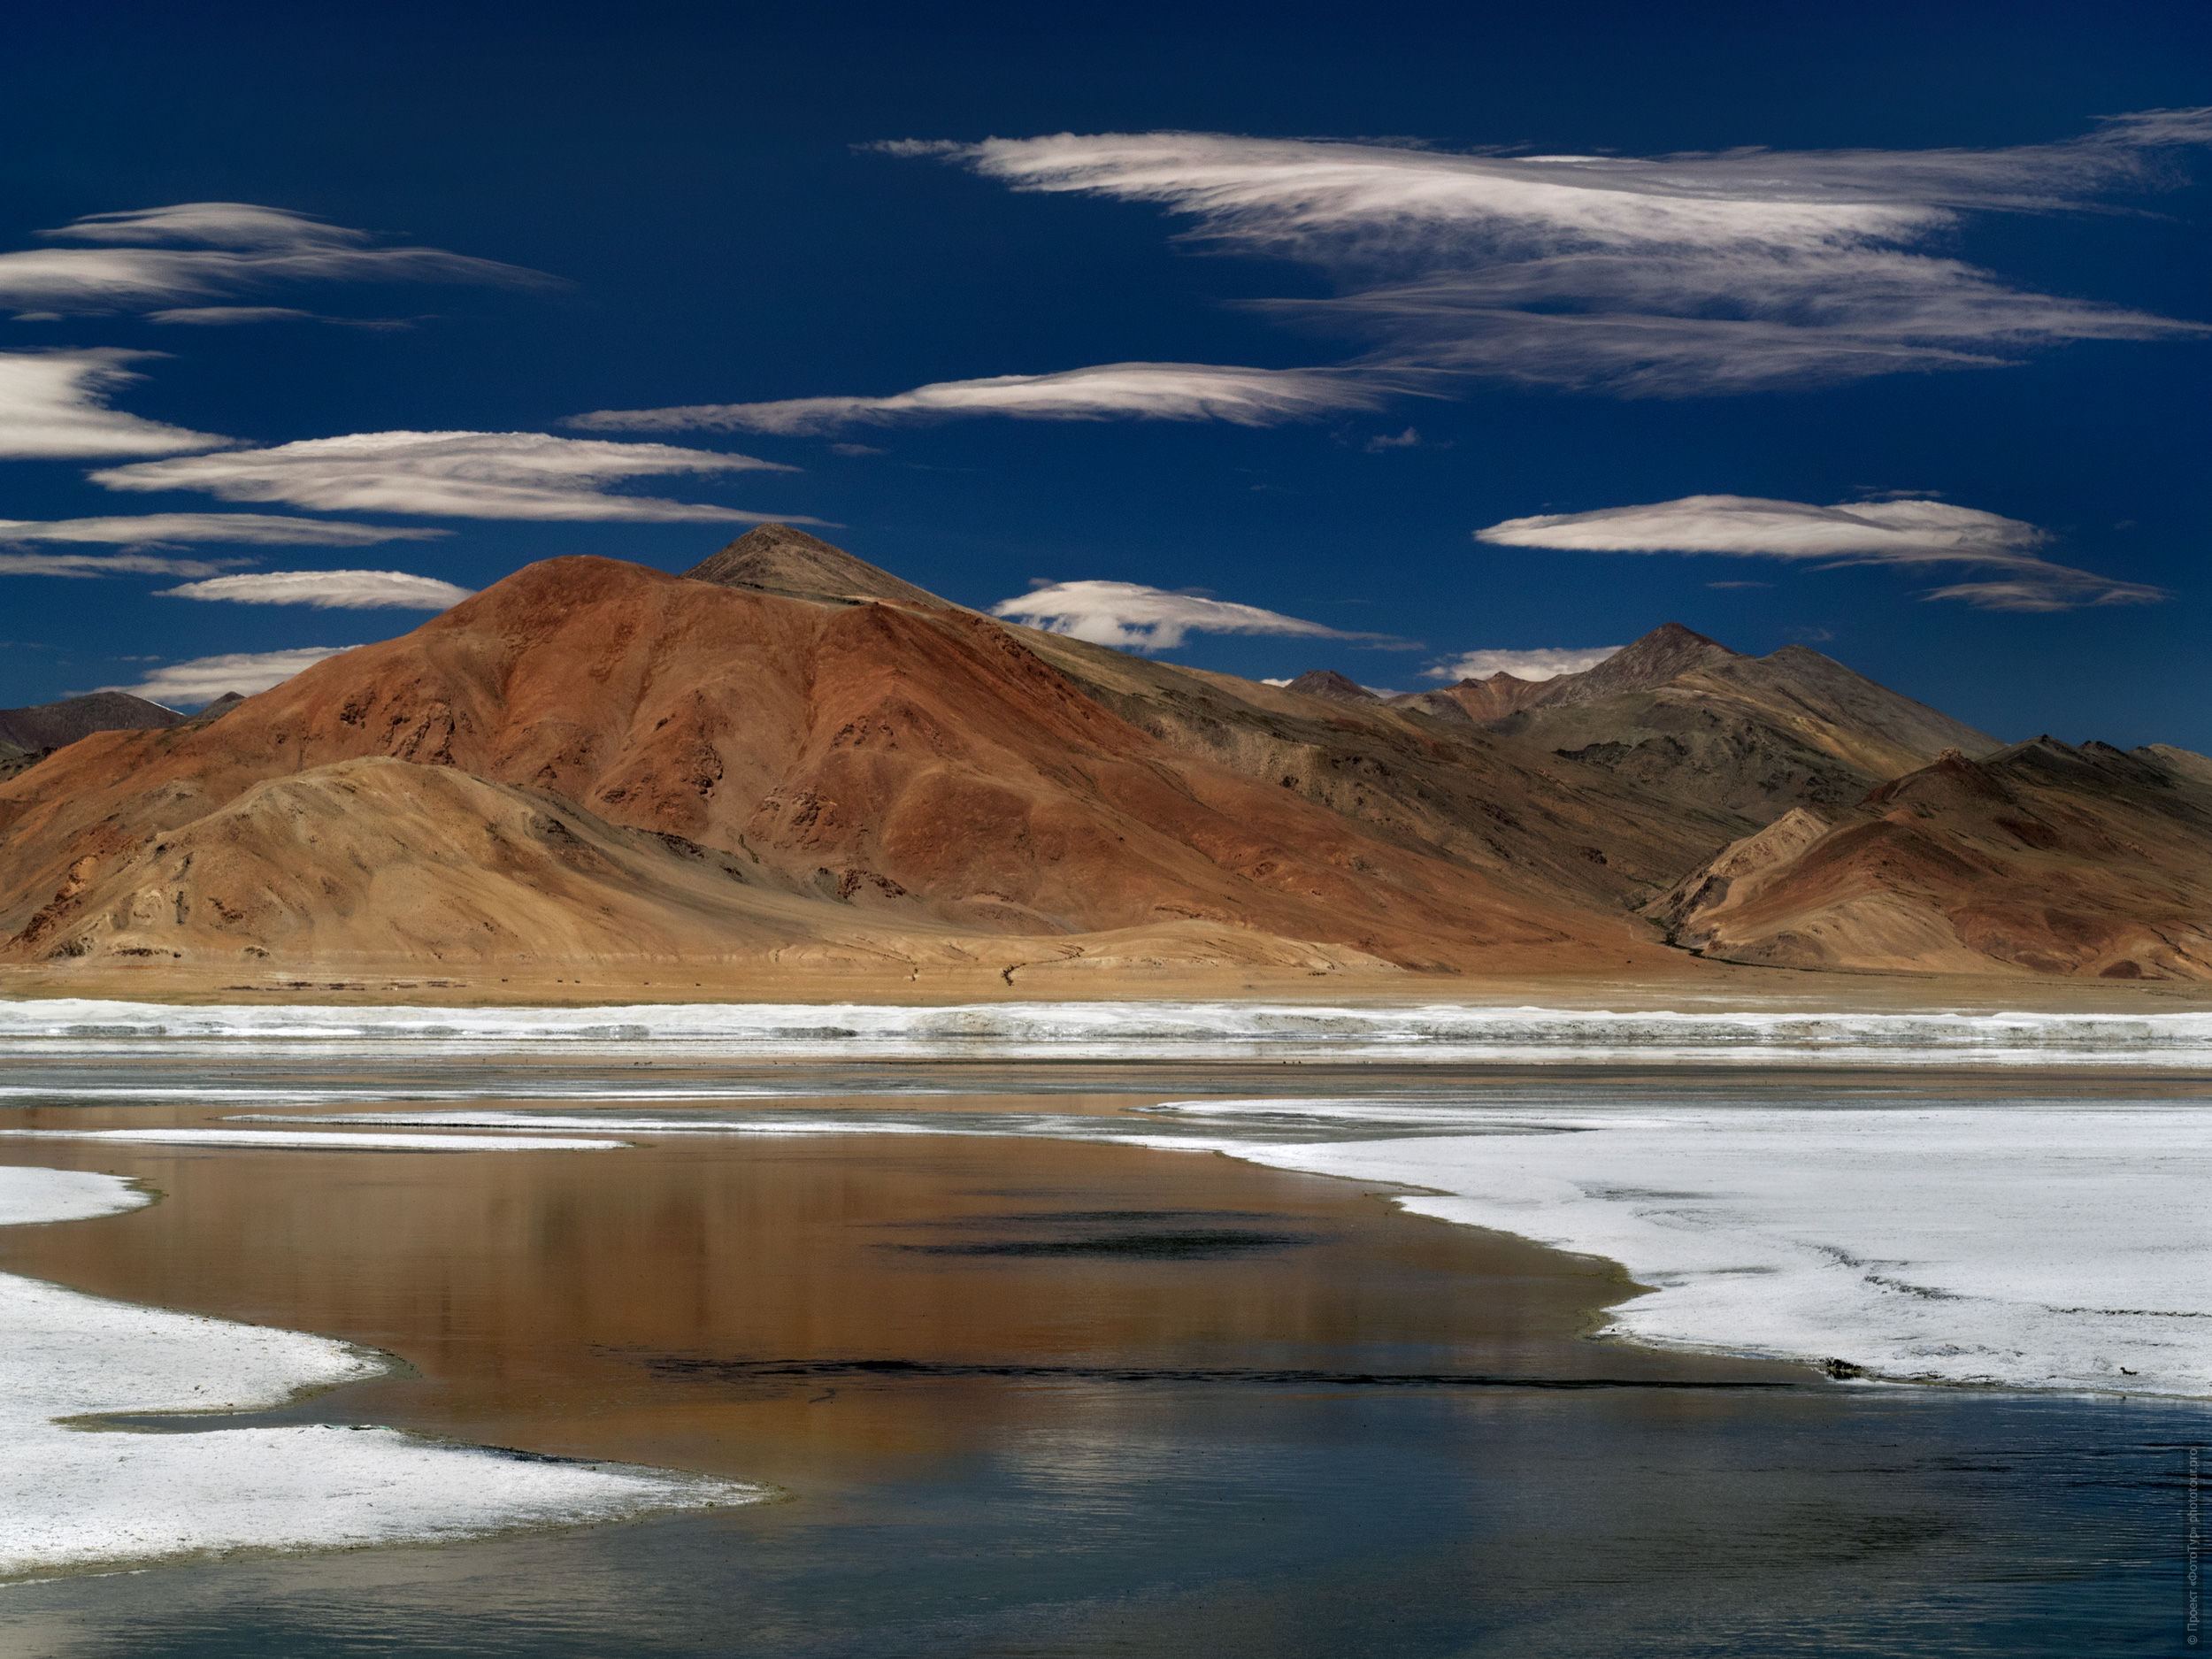 Salt Lake Tso Kar, Ladakh. Photo tour / tour Tibet of Lake-1: Pangong, Tso Moriri, Tso Kar, Tso Chiagar, Dance of Tsam on Lake Pangong, 19.06. - 28.06.2021.